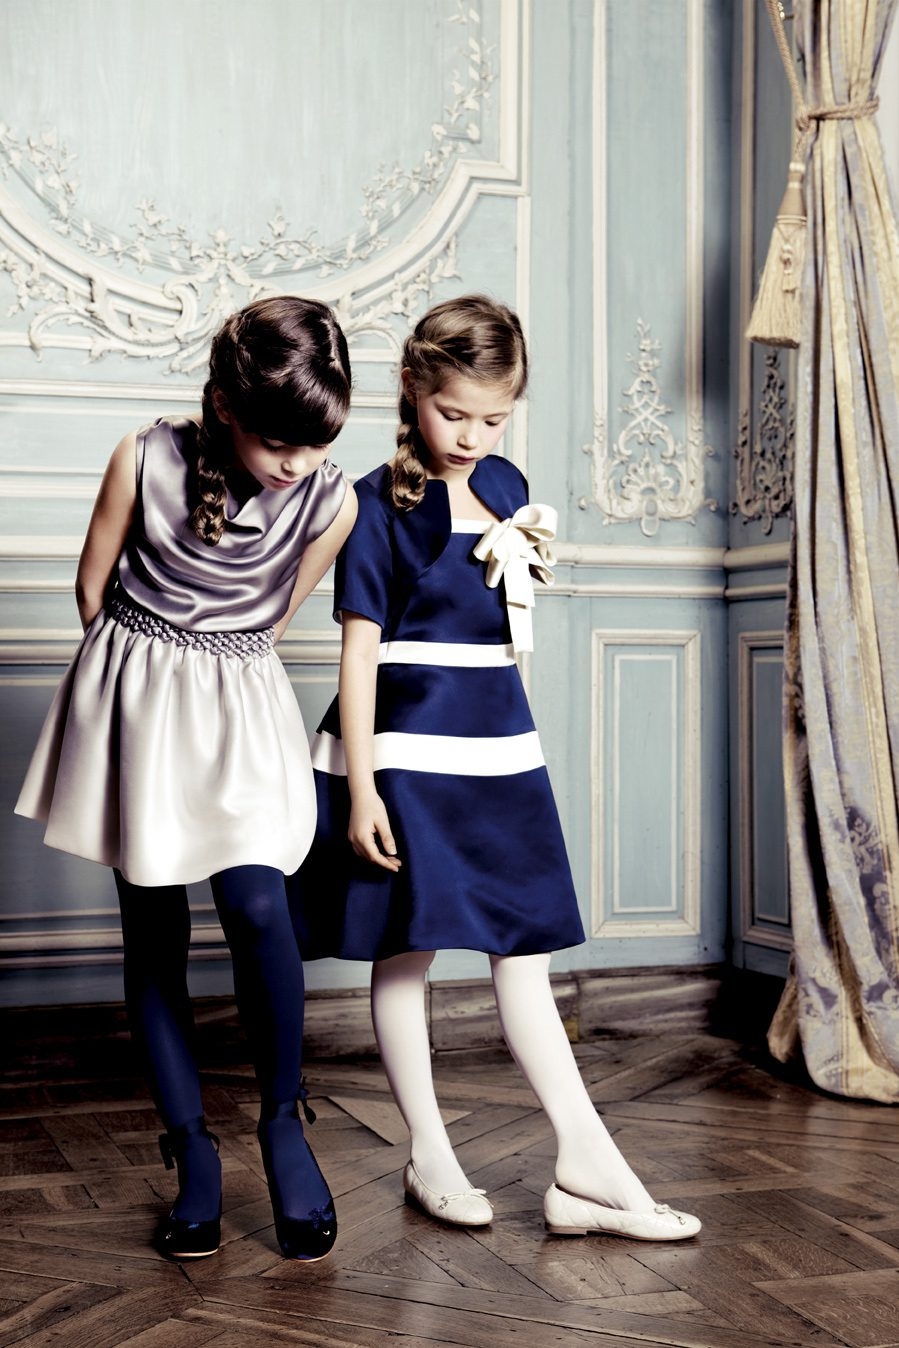 Kids Dresses Are Designed By Renowned Fashion Designers